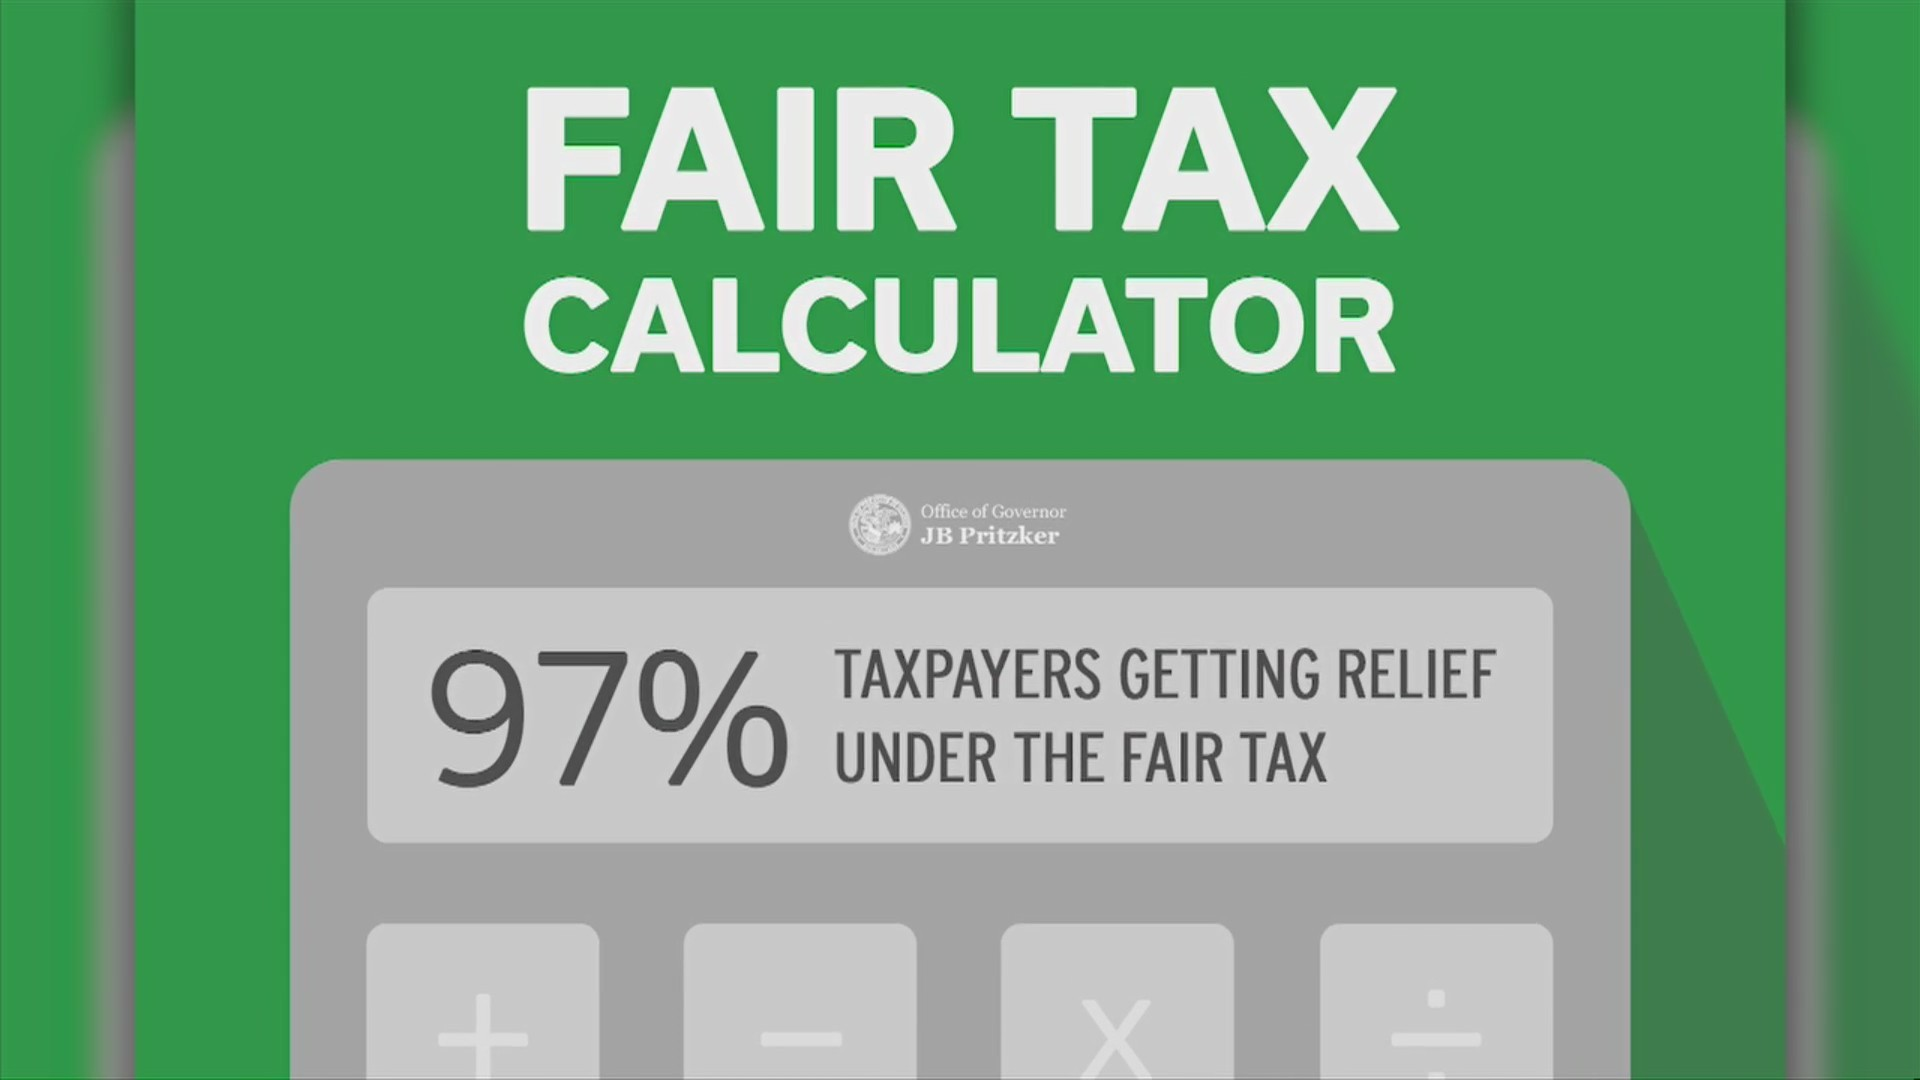 Gov. Pritzker launches Fair Tax Calculator for people to see how fair tax will affect them